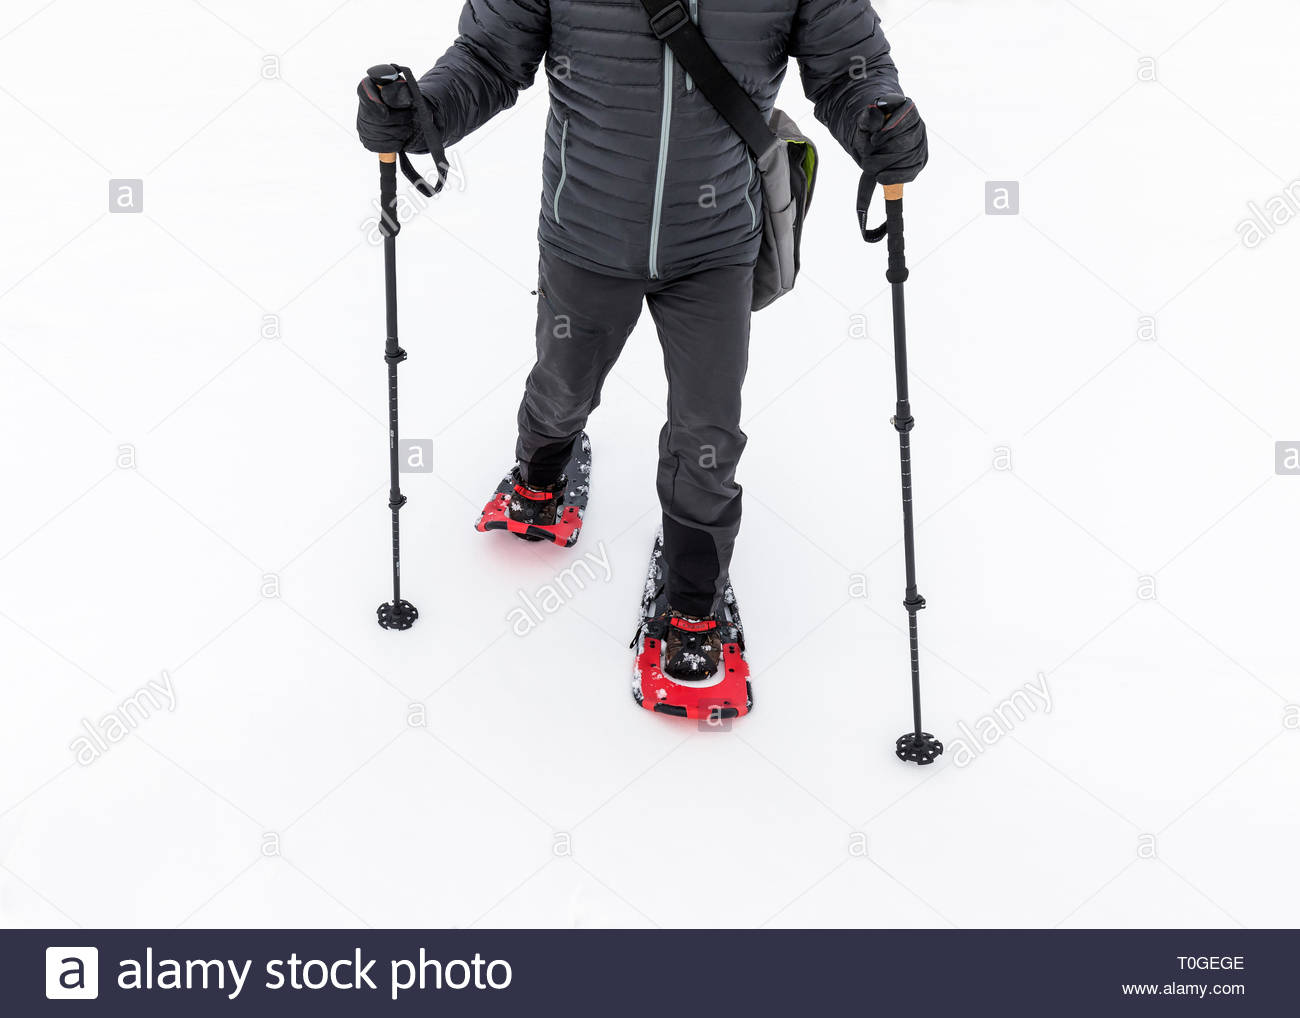 Snowshoeing, close up view - Stock Image